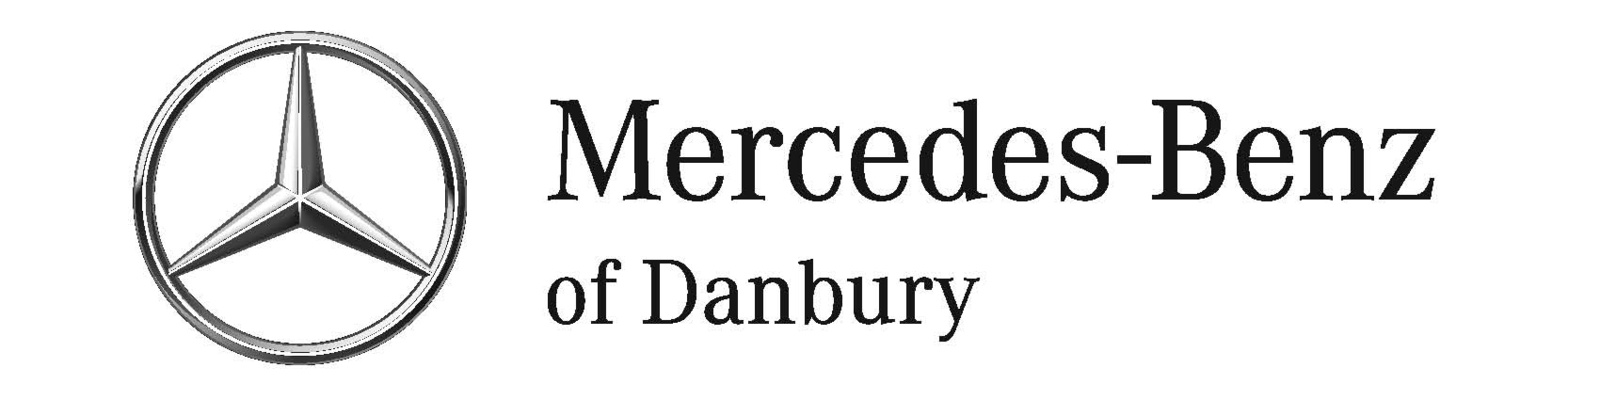 Danbury fiat used cars new cars reviews photos and for Mercedes benz of danbury used cars